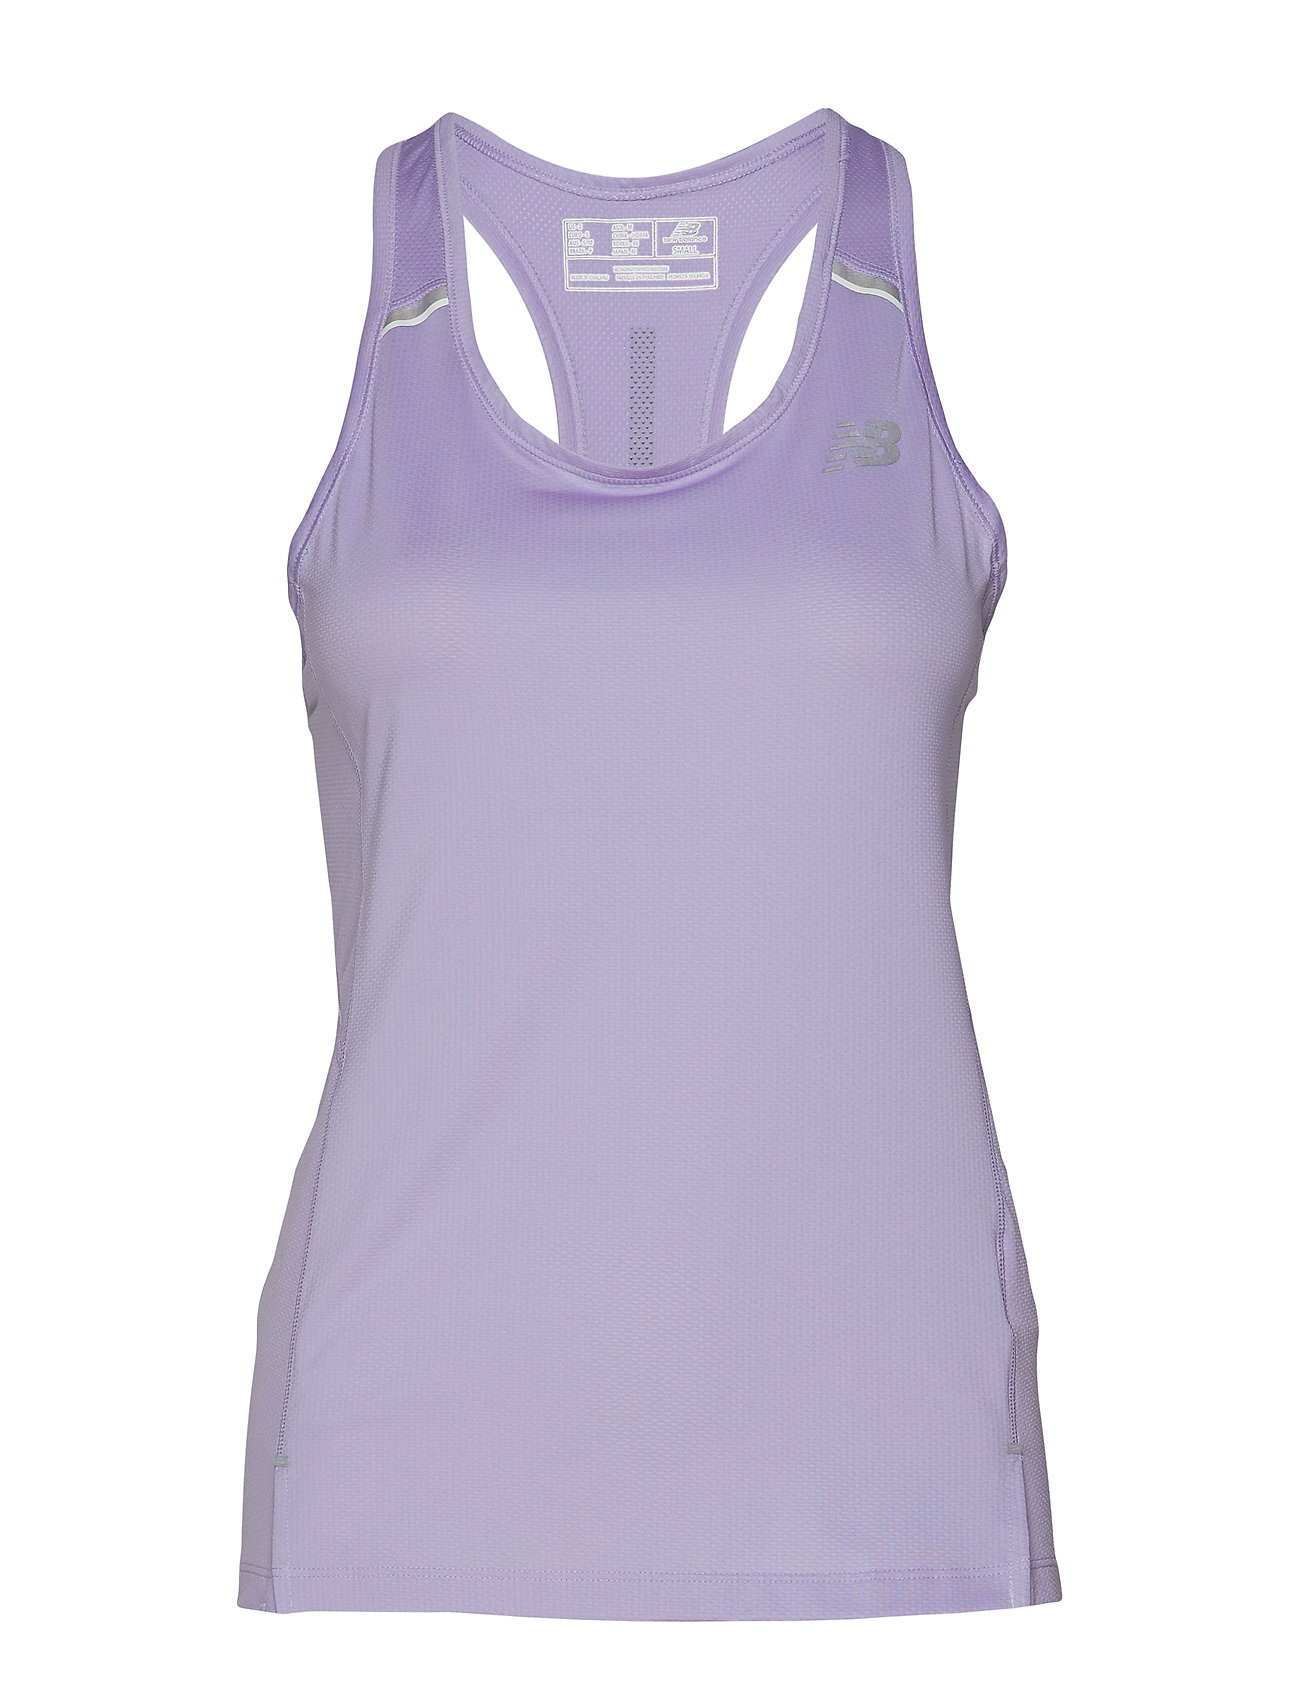 New Balance NB ICE 2.0 TANK